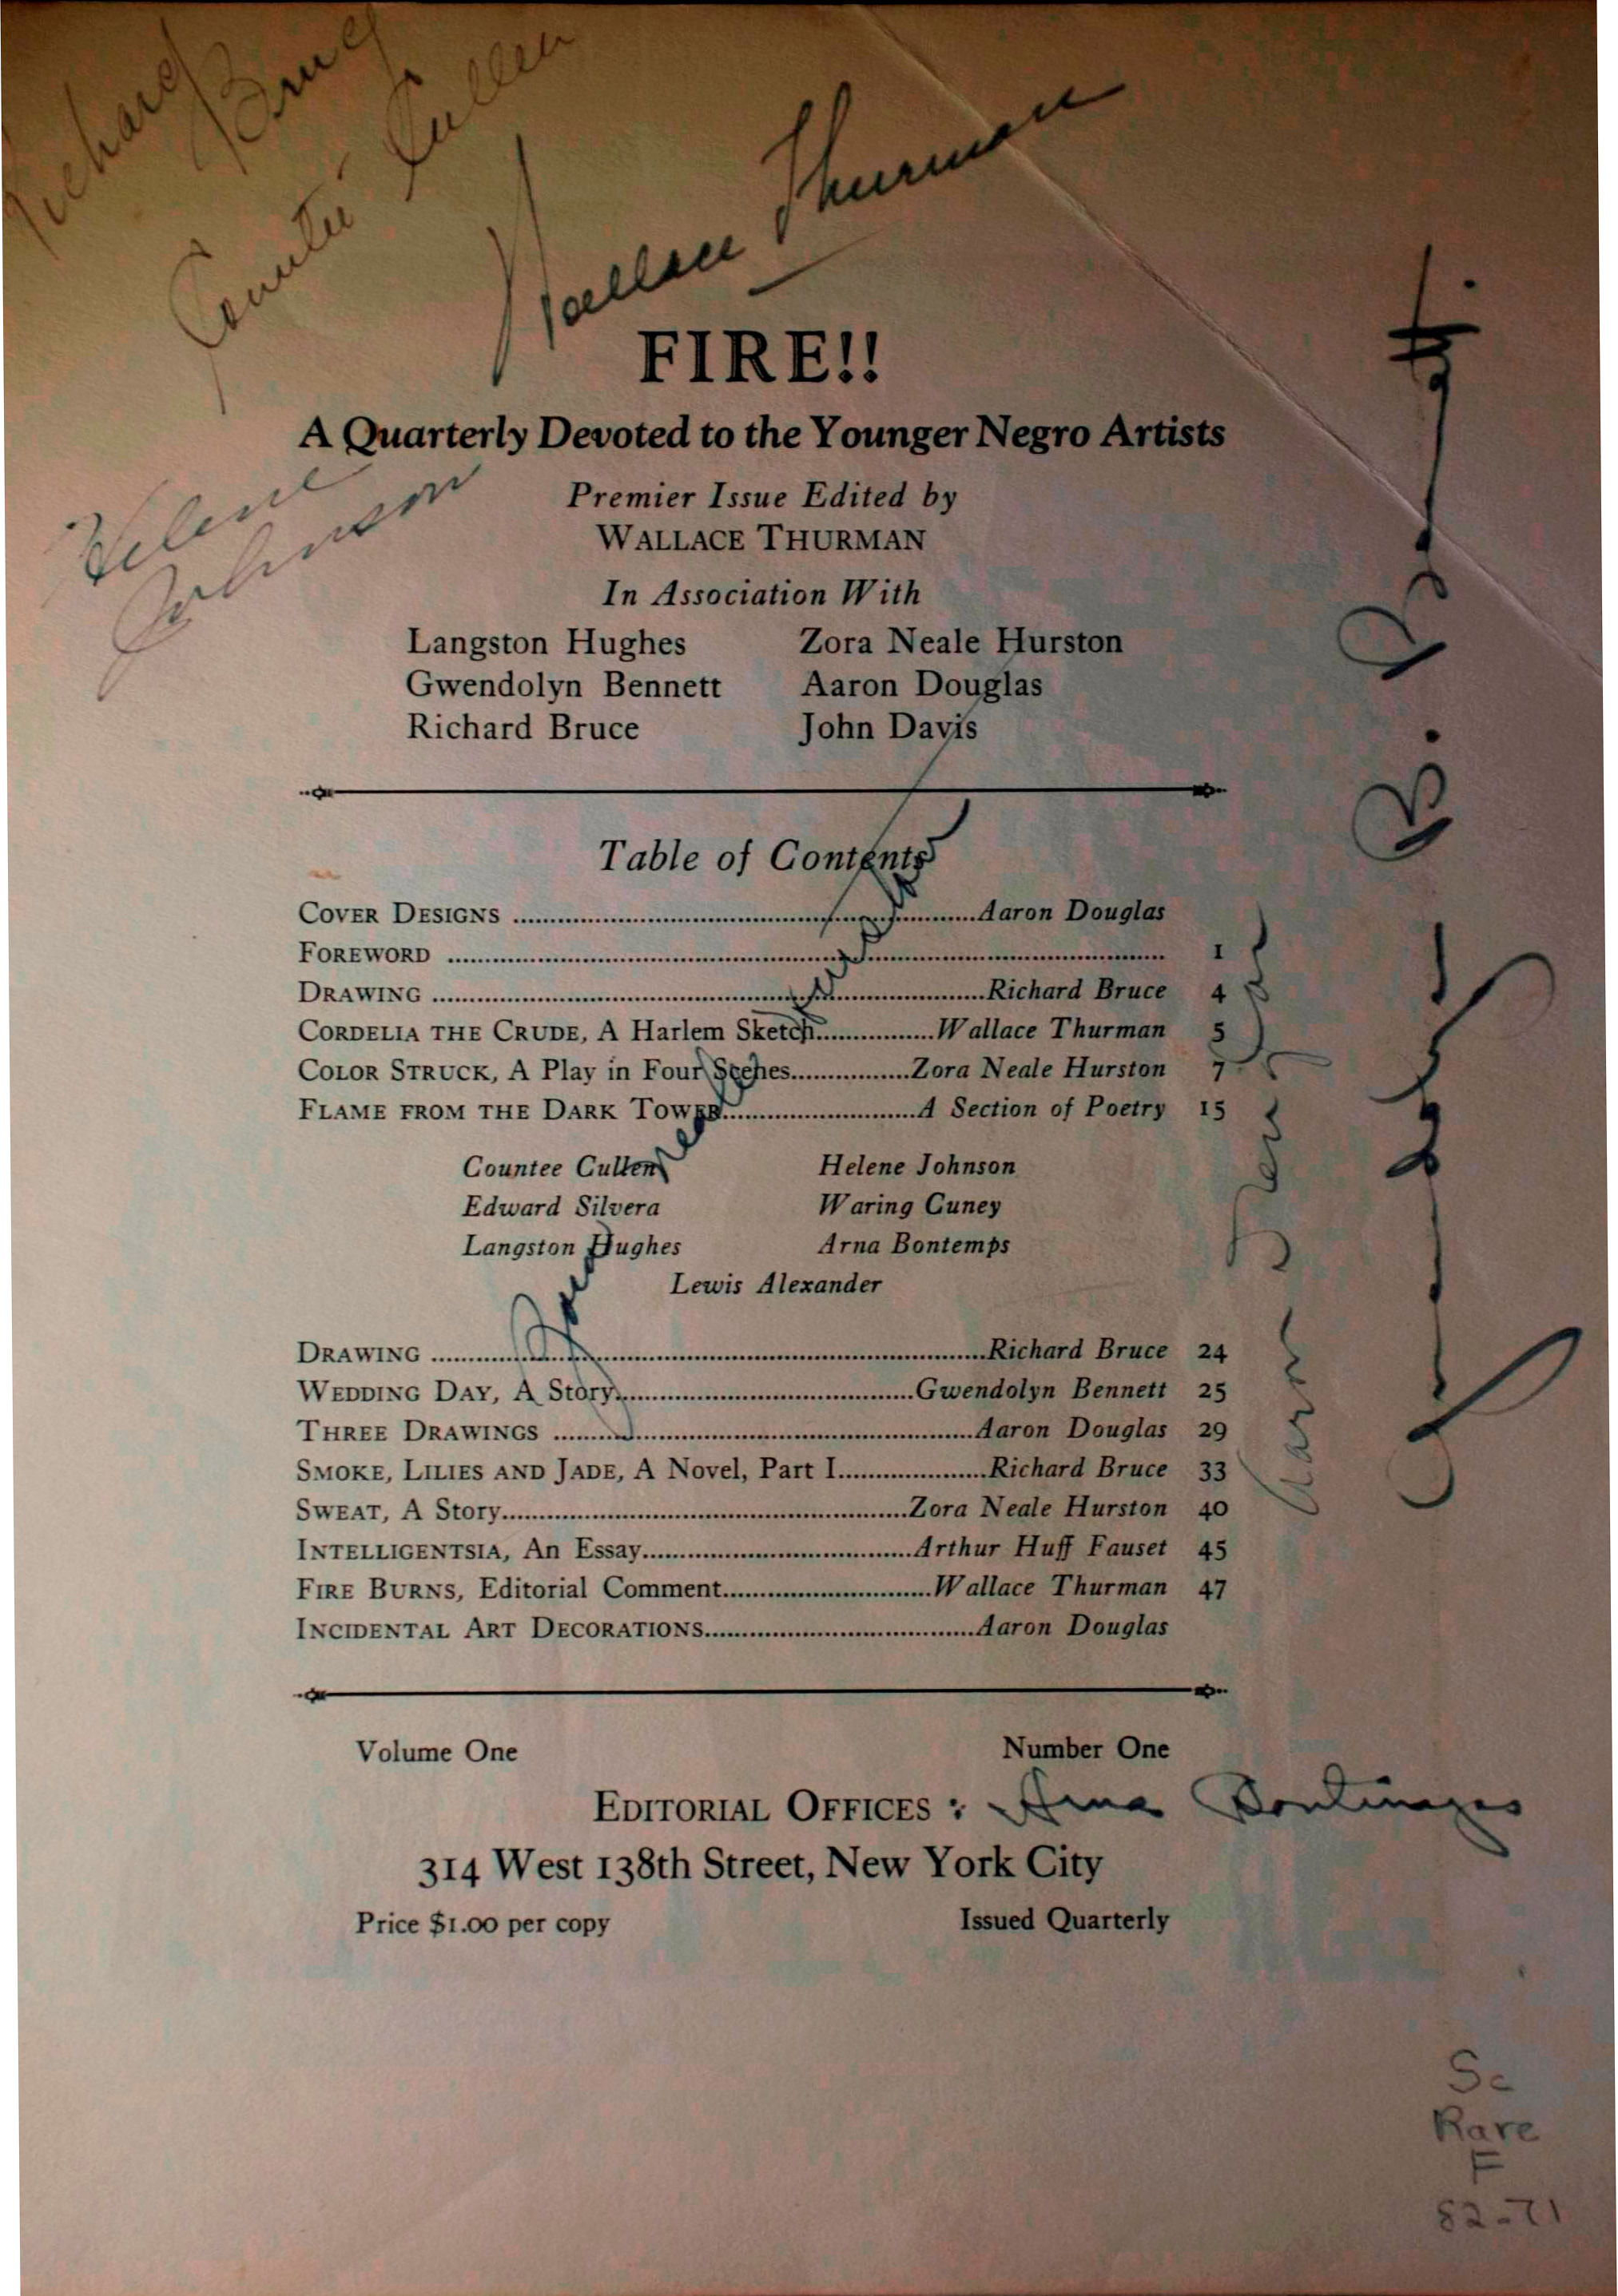 FIRE!! A Quarterly Devoted to Younger Negro Artists (1926), Table of Contents